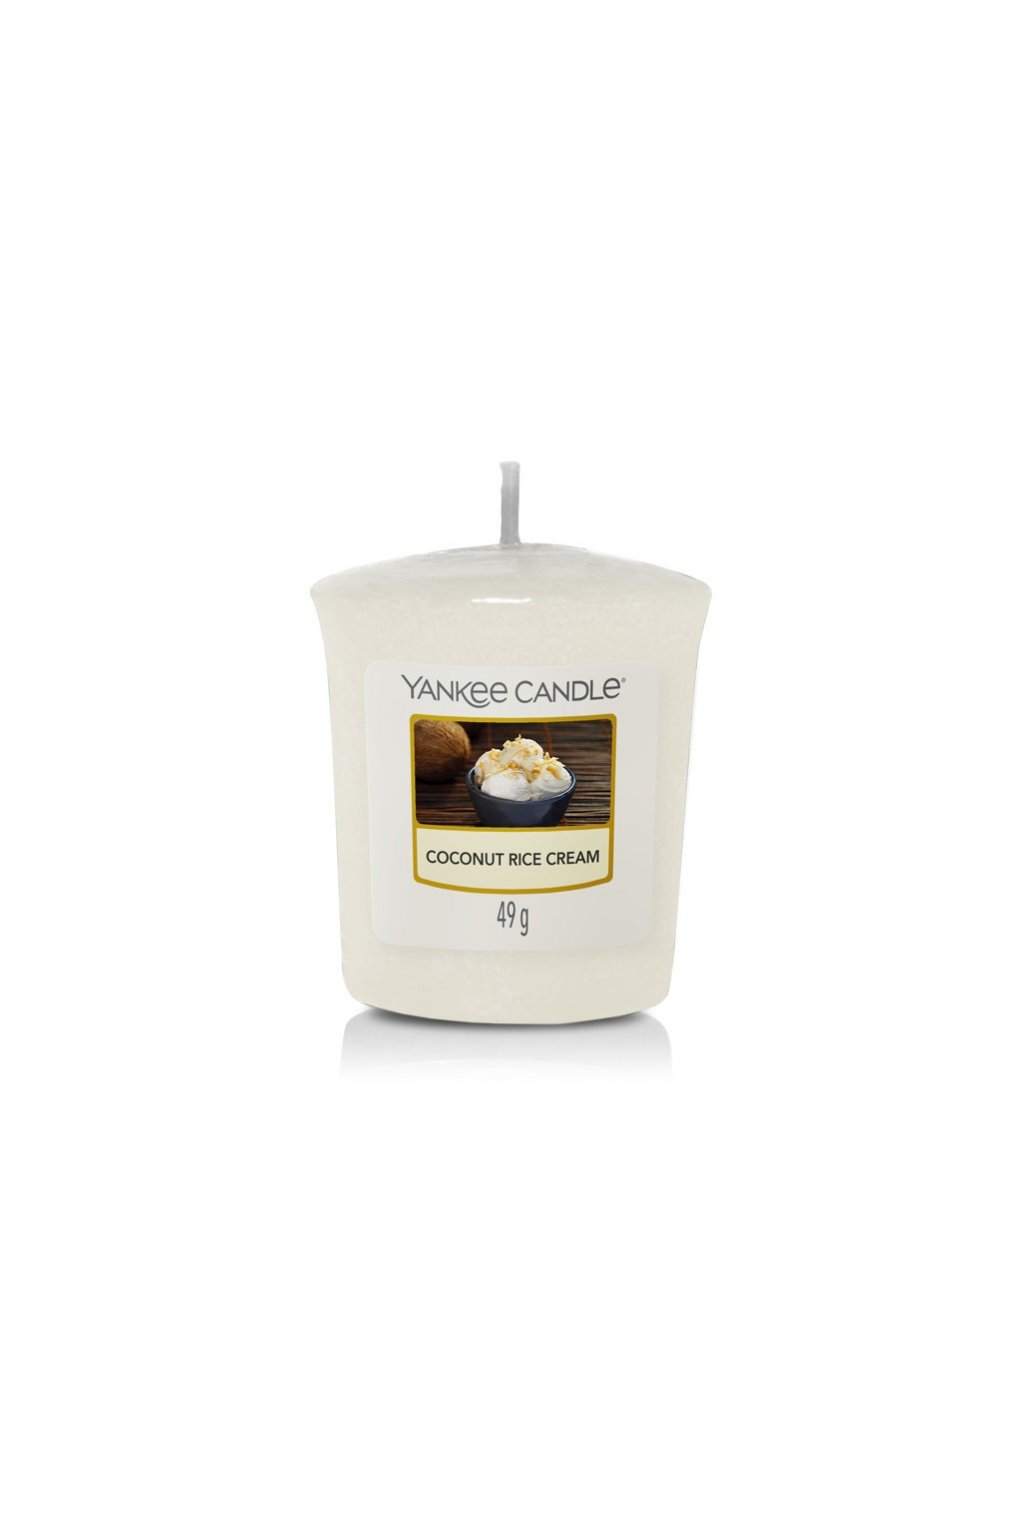 Yankee Candle Coconut Rice Cream 49g